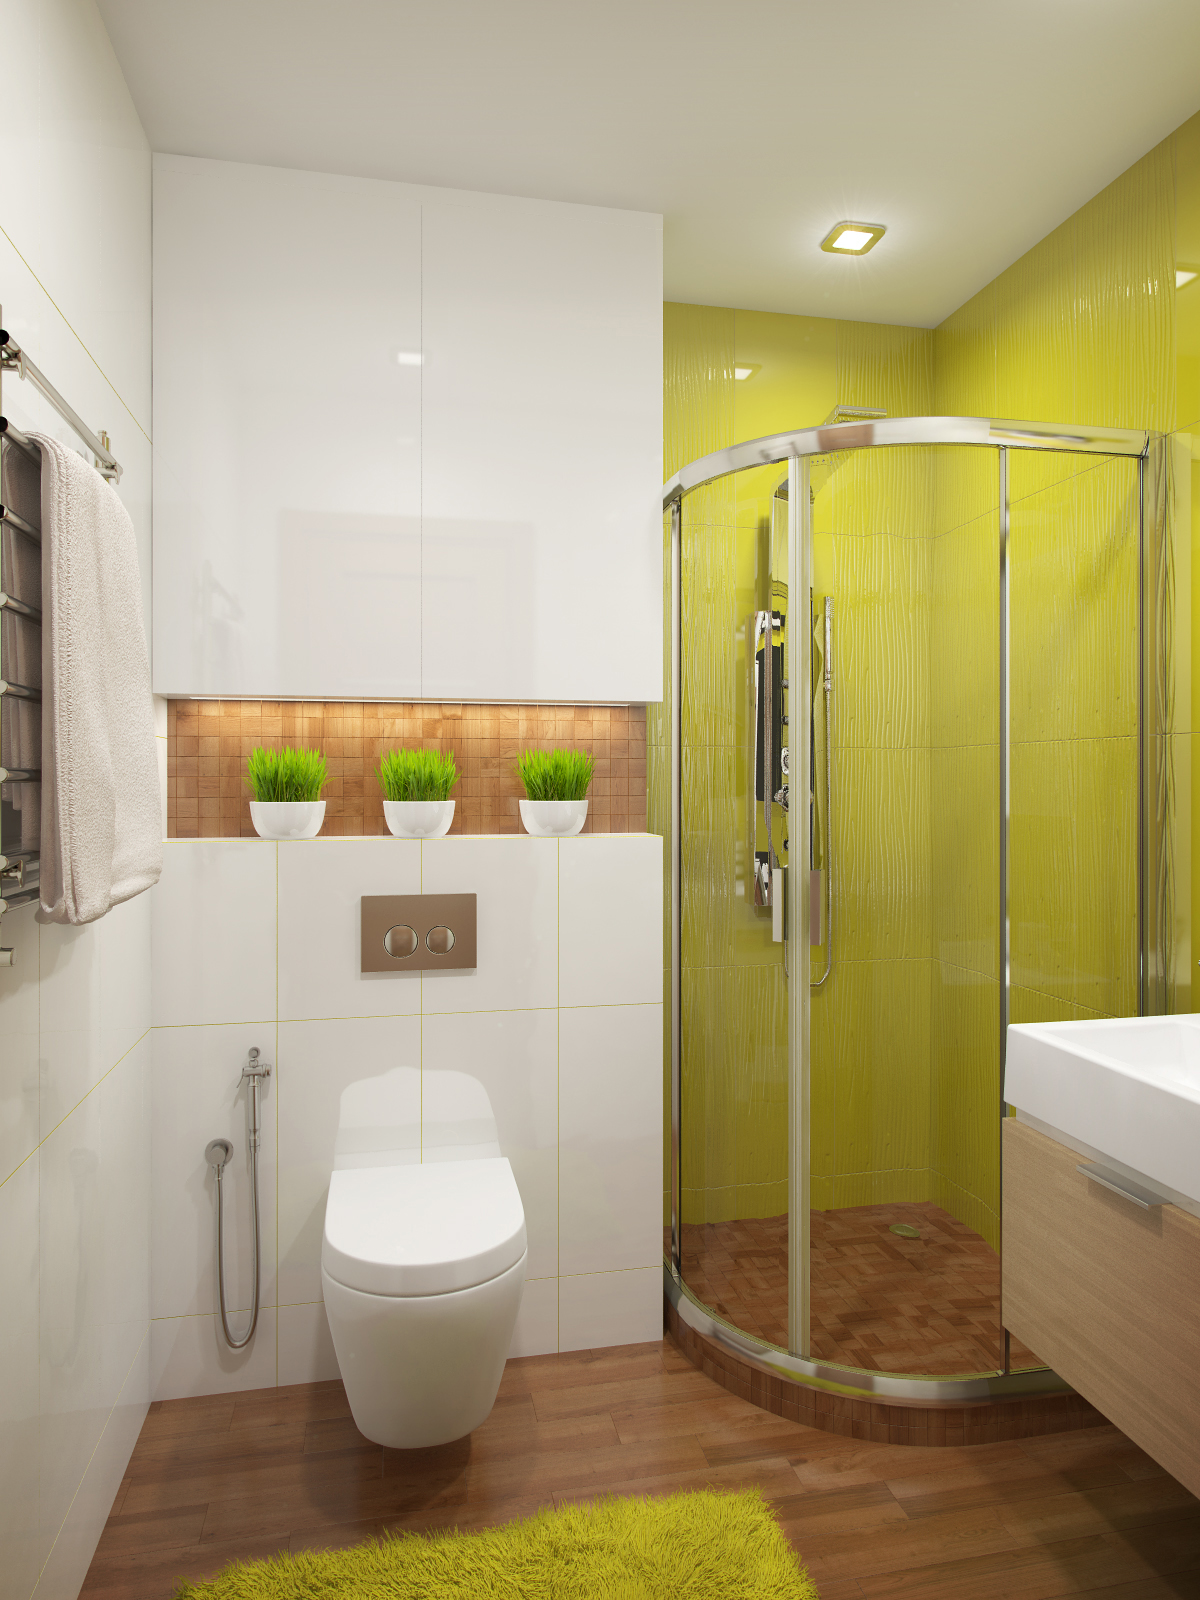 Bathroom Planning And Design